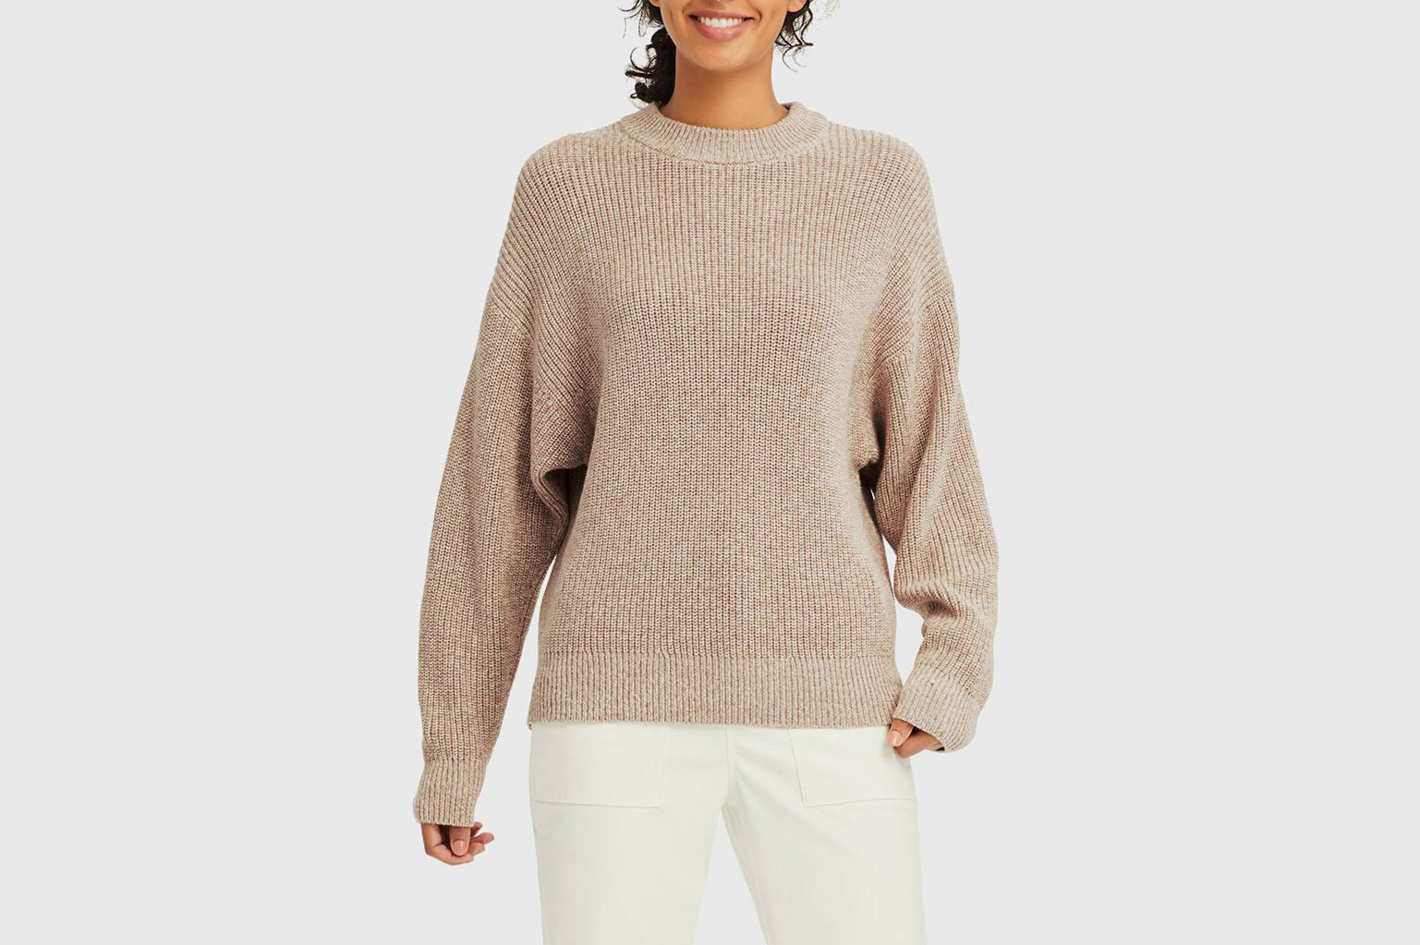 Uniqlo Mixed Dolman Sleeve Sweater